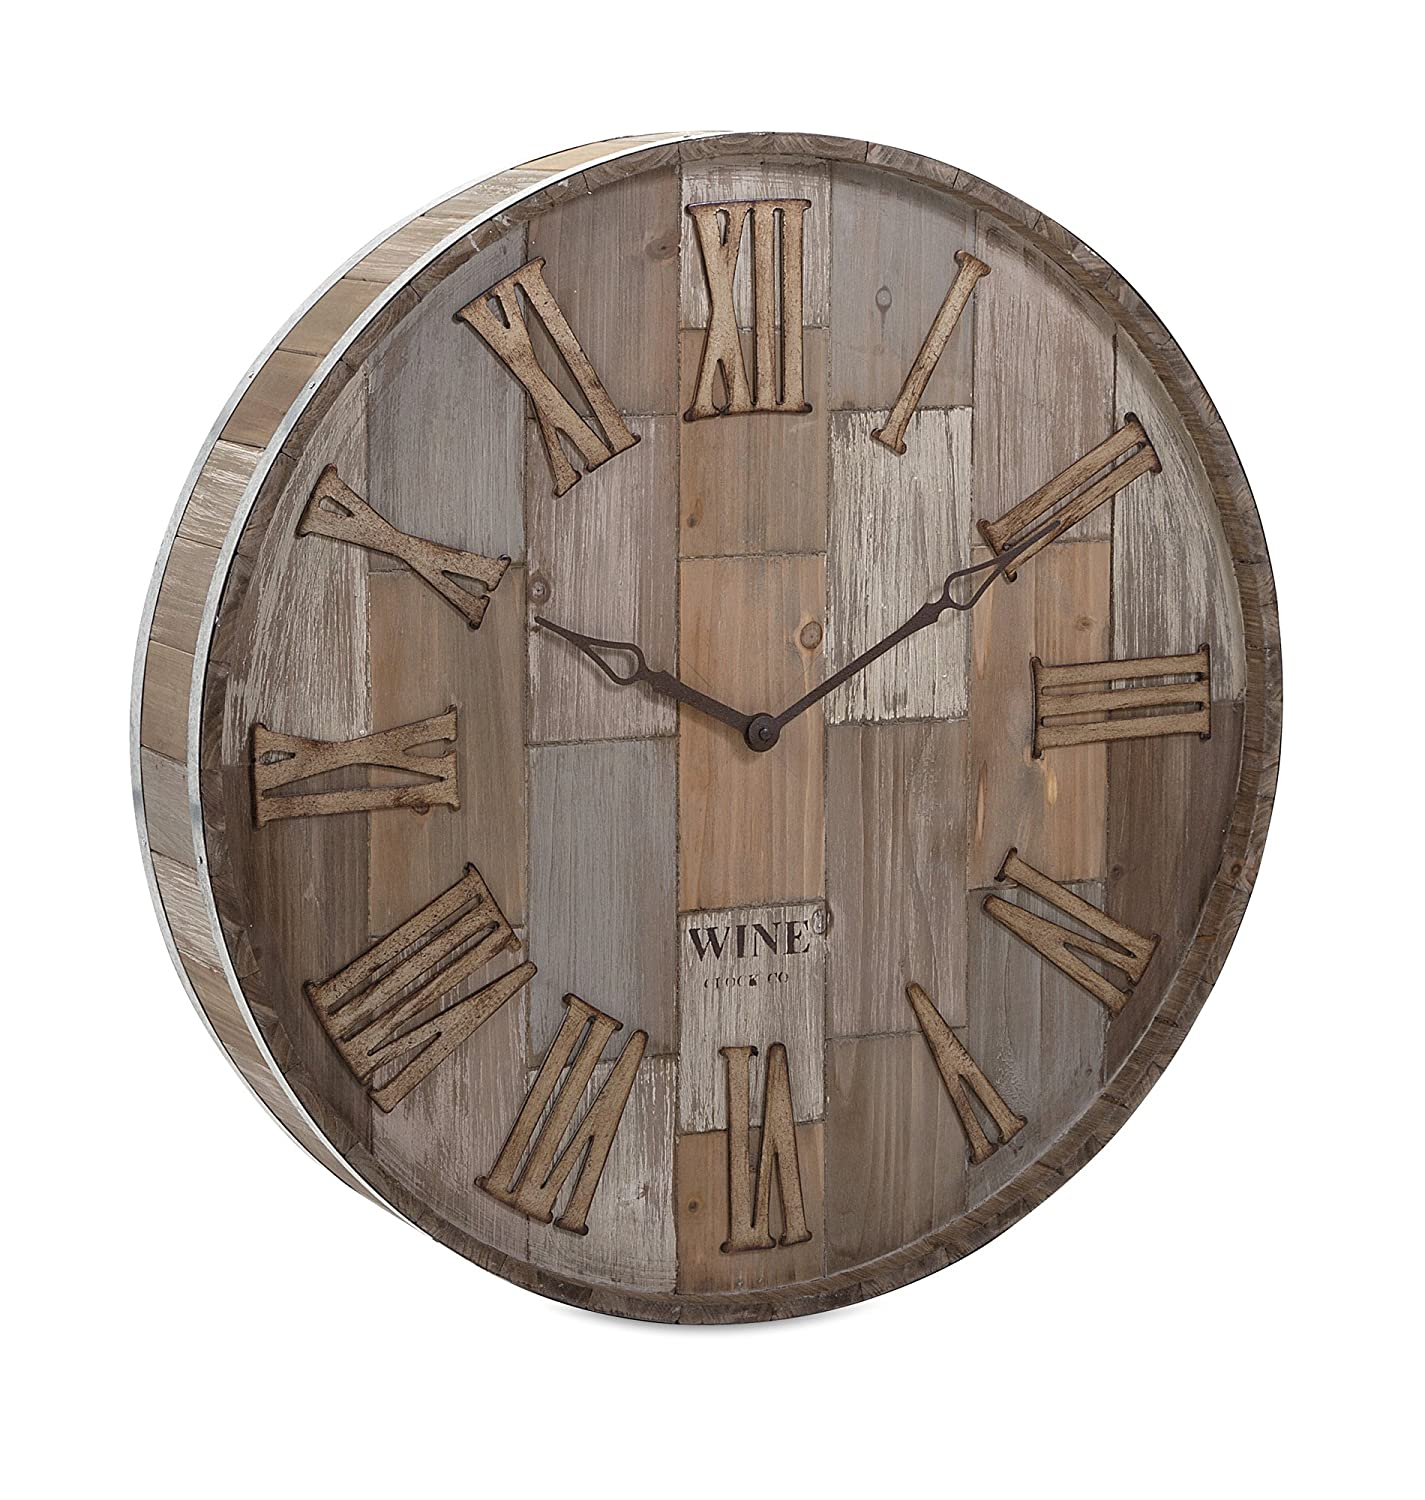 Amazon infinity instruments wine barrel 24 in wall clock imax 83457 wine barrel wood wall clock natural amipublicfo Gallery